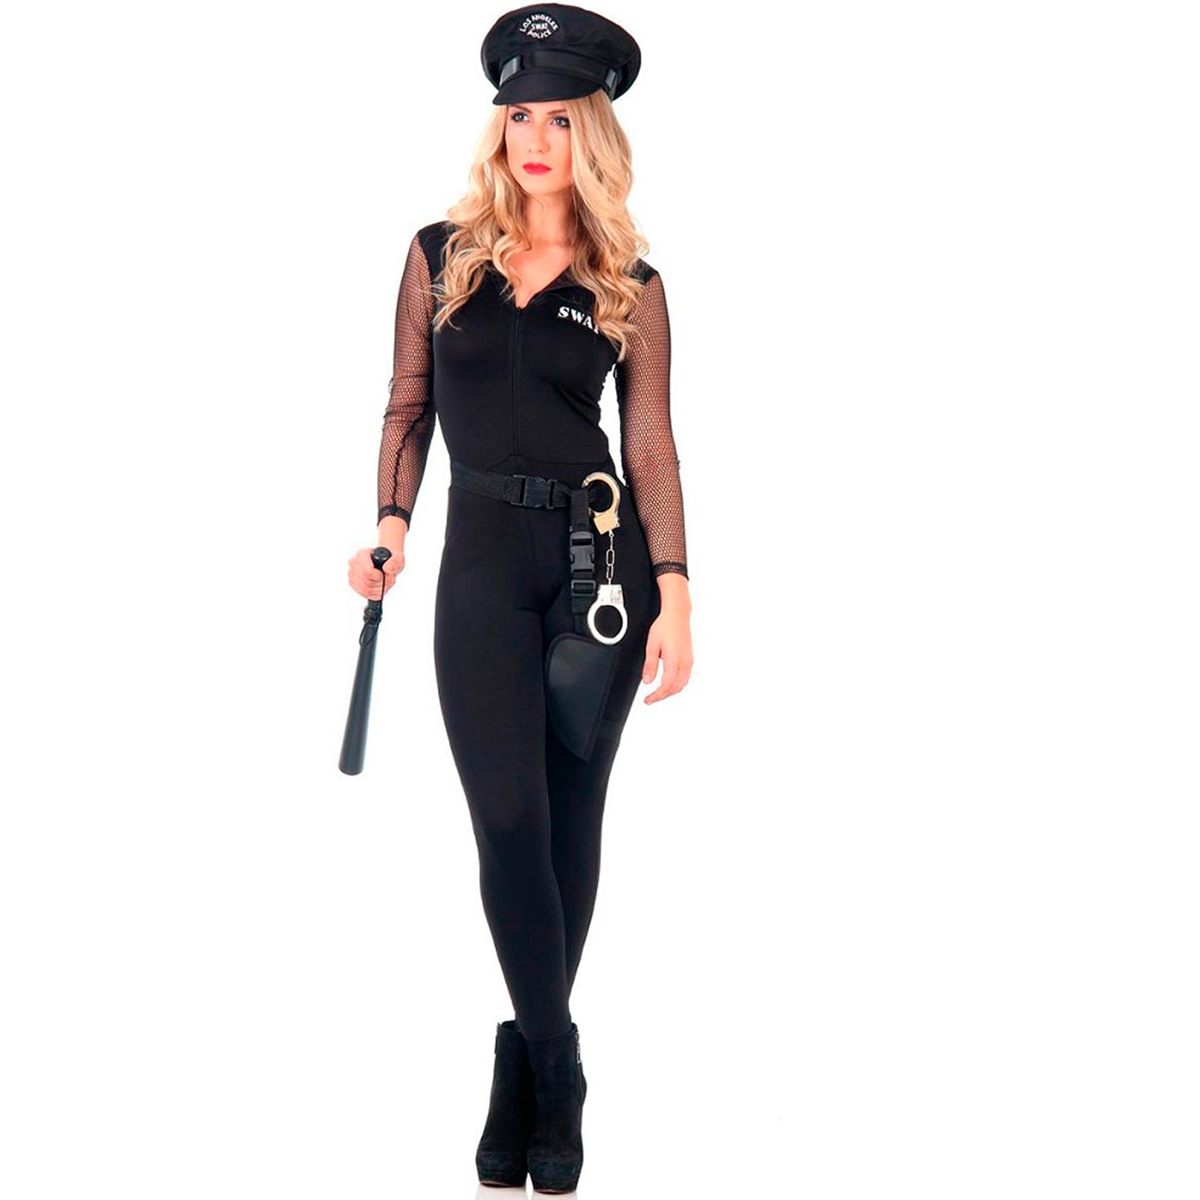 e5f1e6672 Fantasia de Policial Feminina Adulto Heat Girls - FantasiasCarol